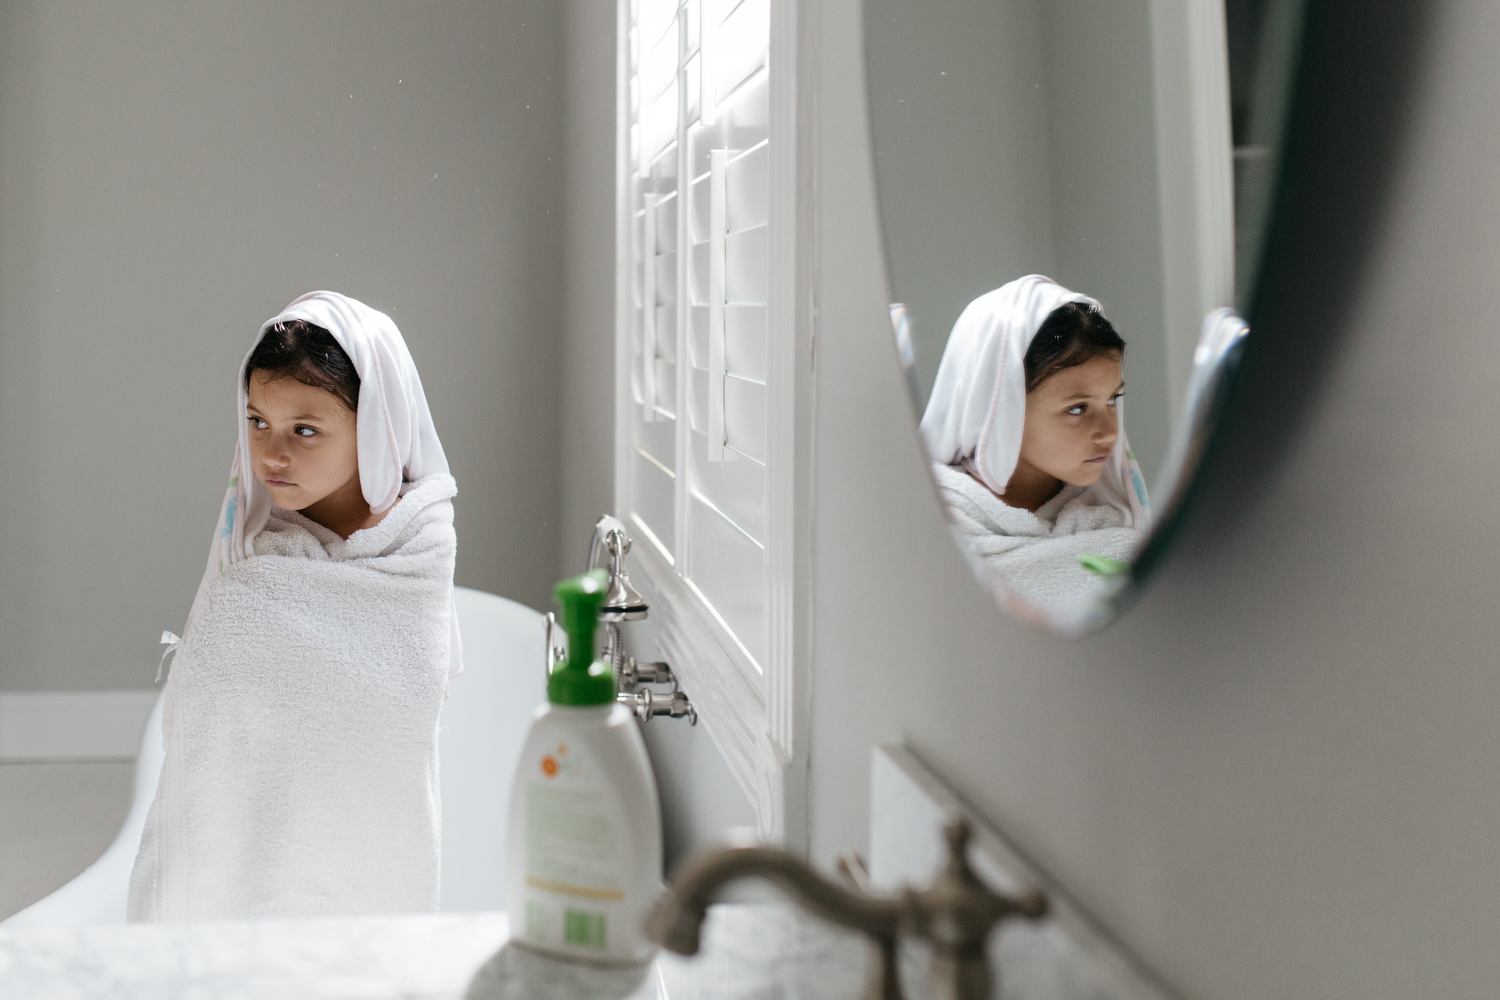 Girl Wrapped Up in Towels at Bathtime Central Florida Documentary Photographer.jpg